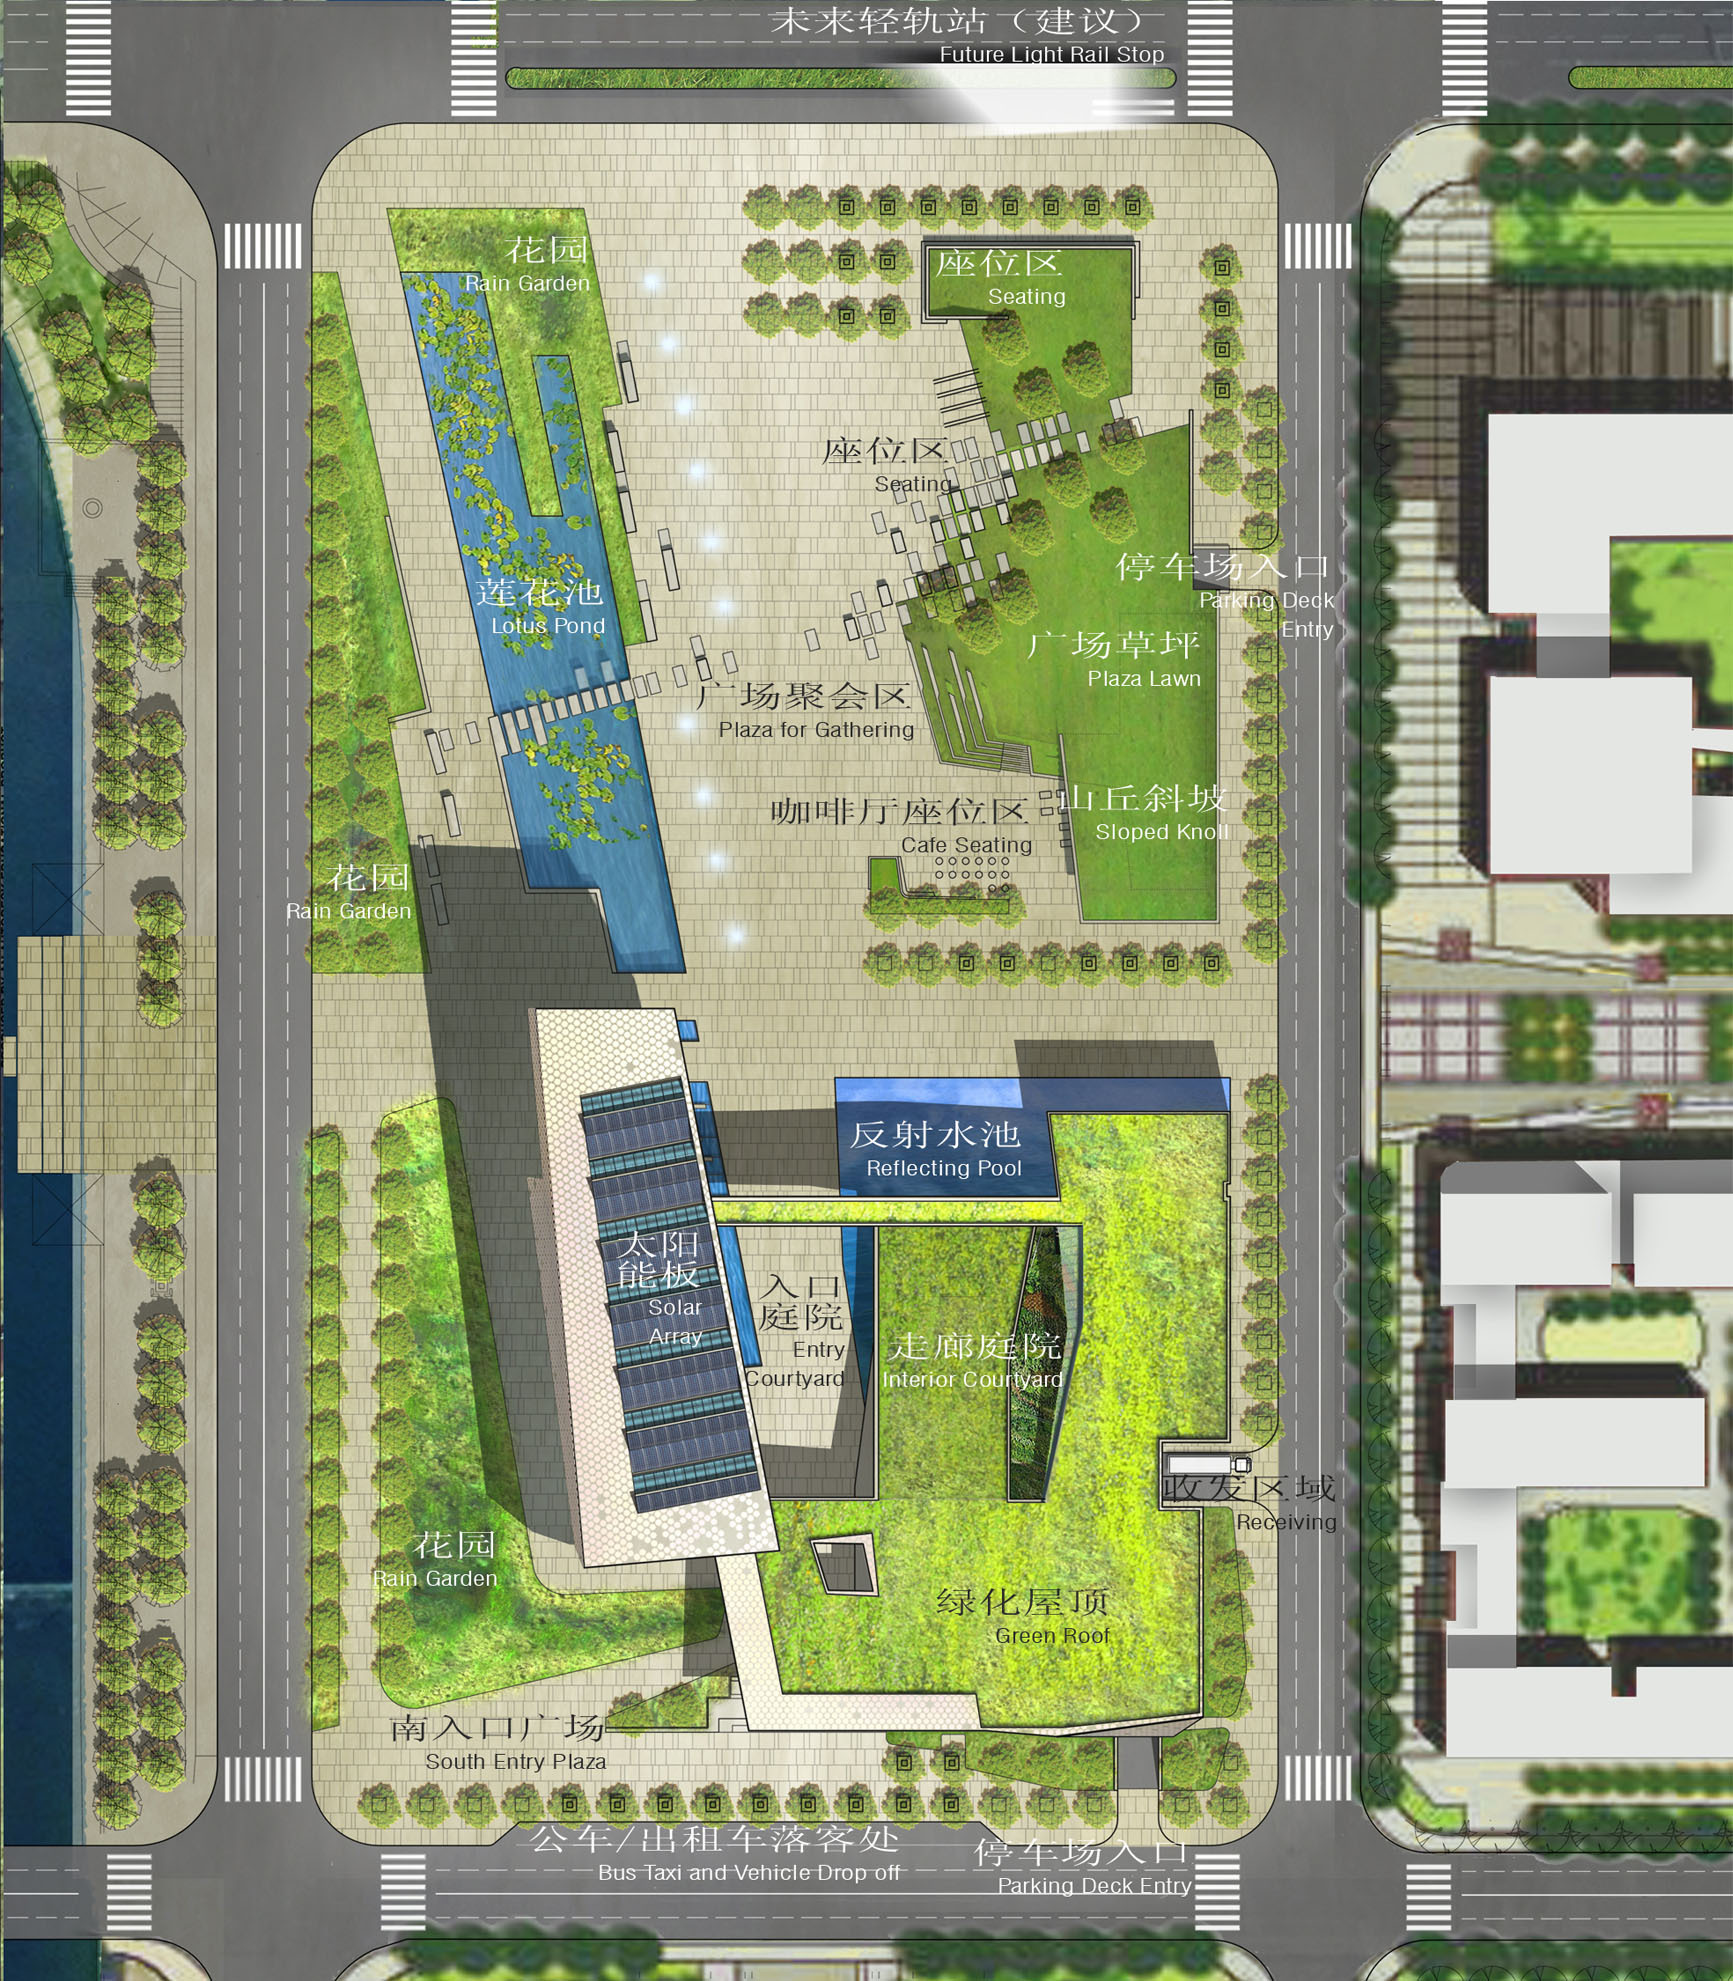 Mixed Use Floor Plans Gallery Of Civic Cultural Exhibition And Activity Center